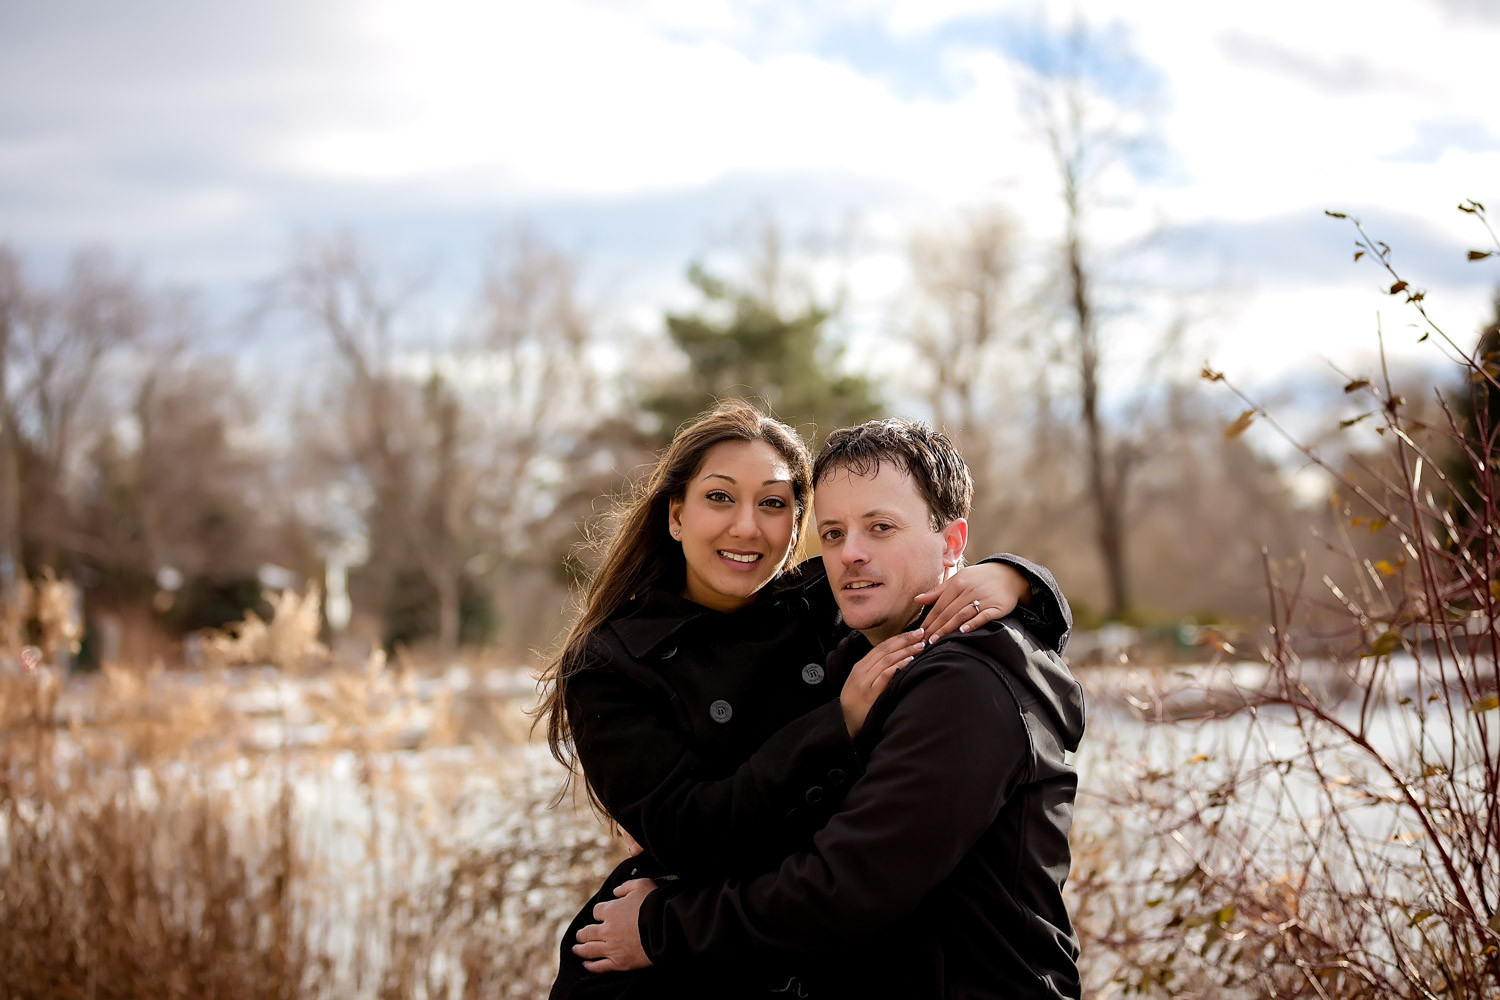 Lisa-Jared-Richmond-Hill-Mill-Pond-Park-Engagement-Damion-Rae-Toronto-Wedding-Photographer-0015